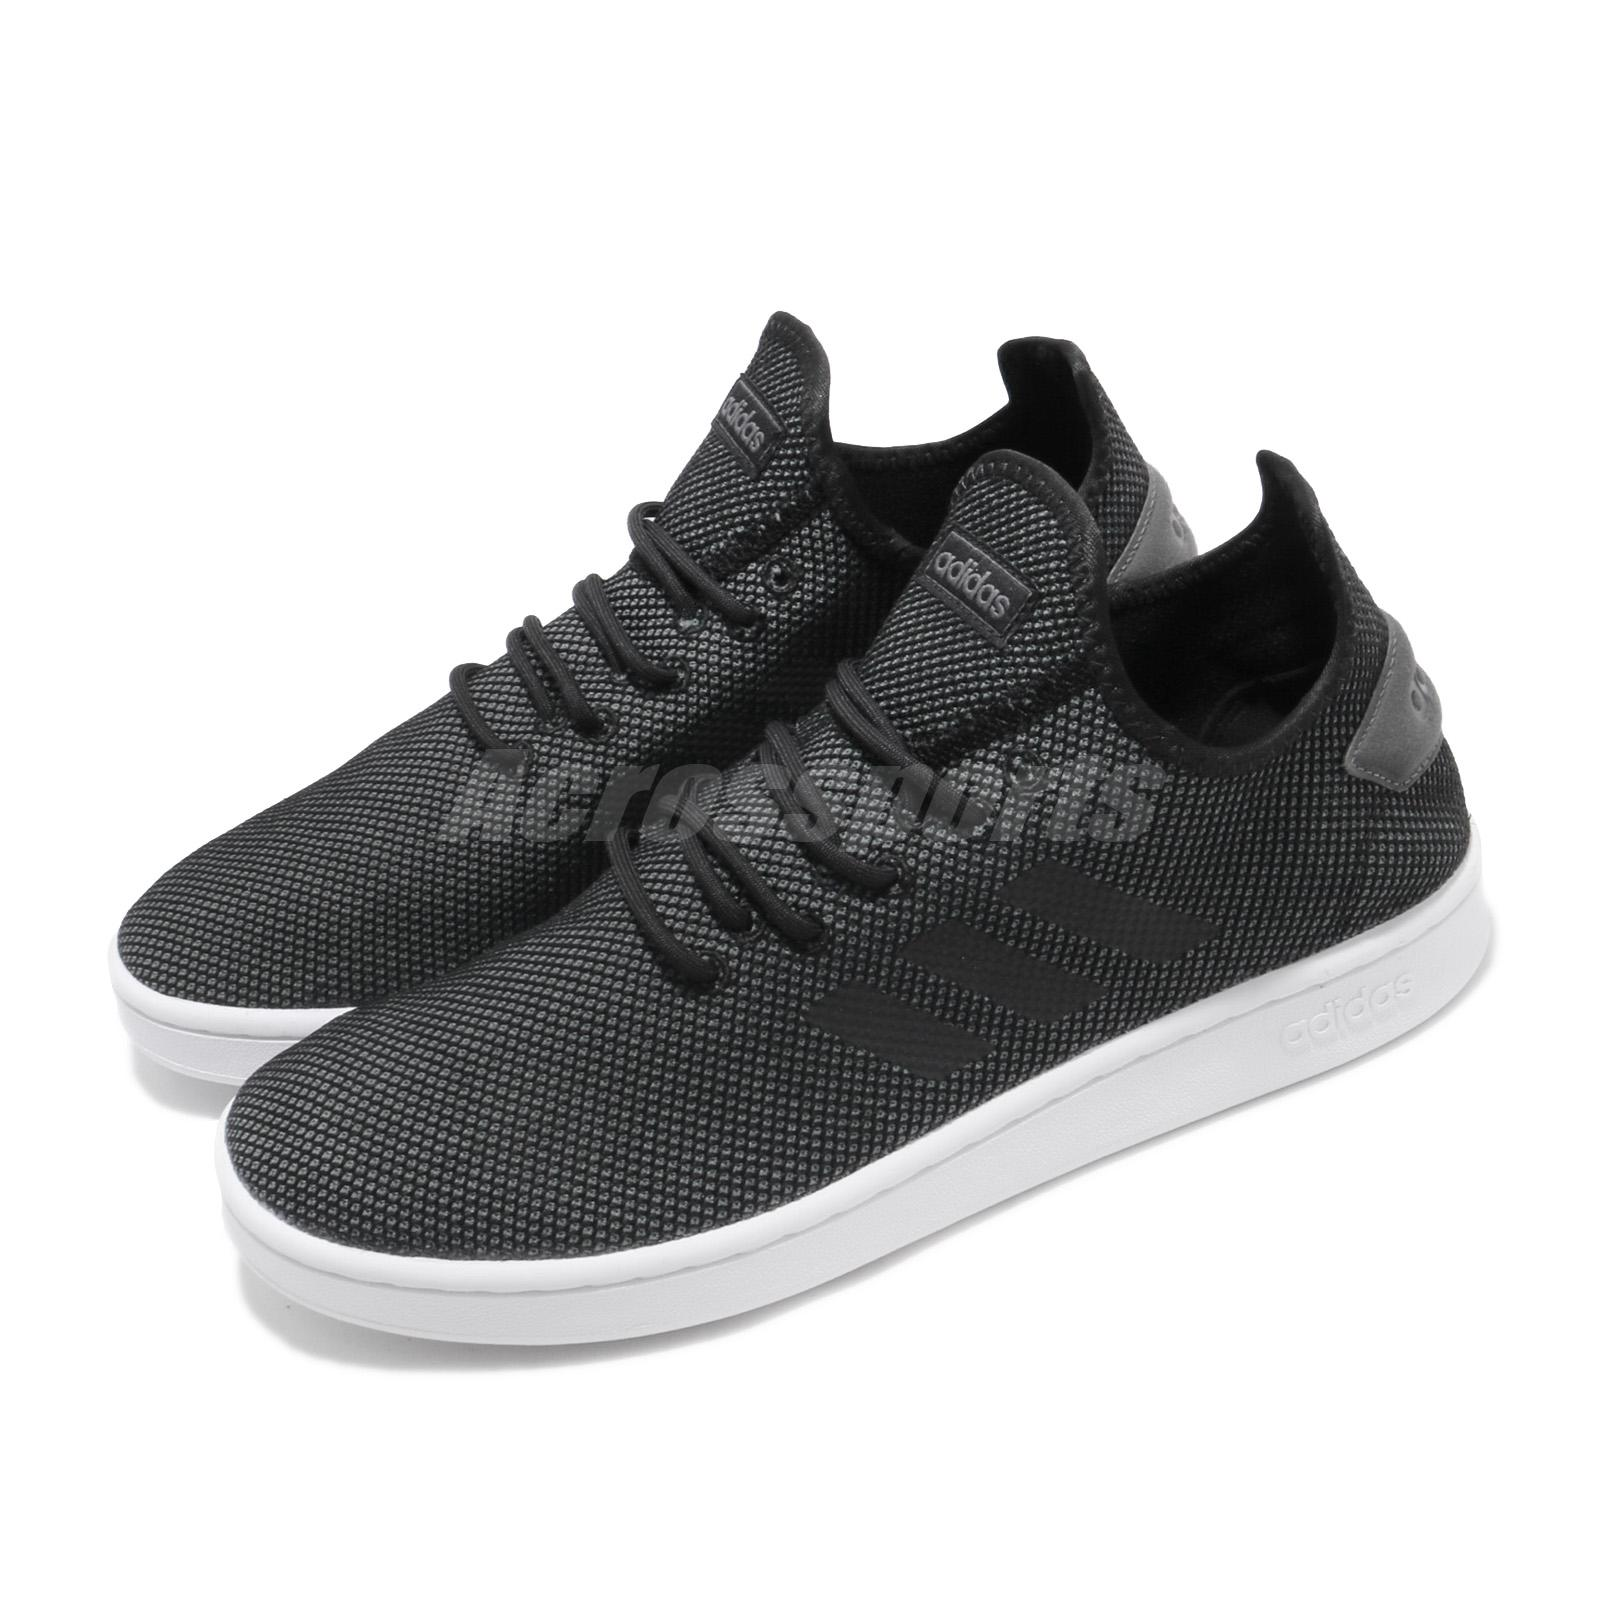 Court Adapt Schuh | surface | Adidas, Black, Grey